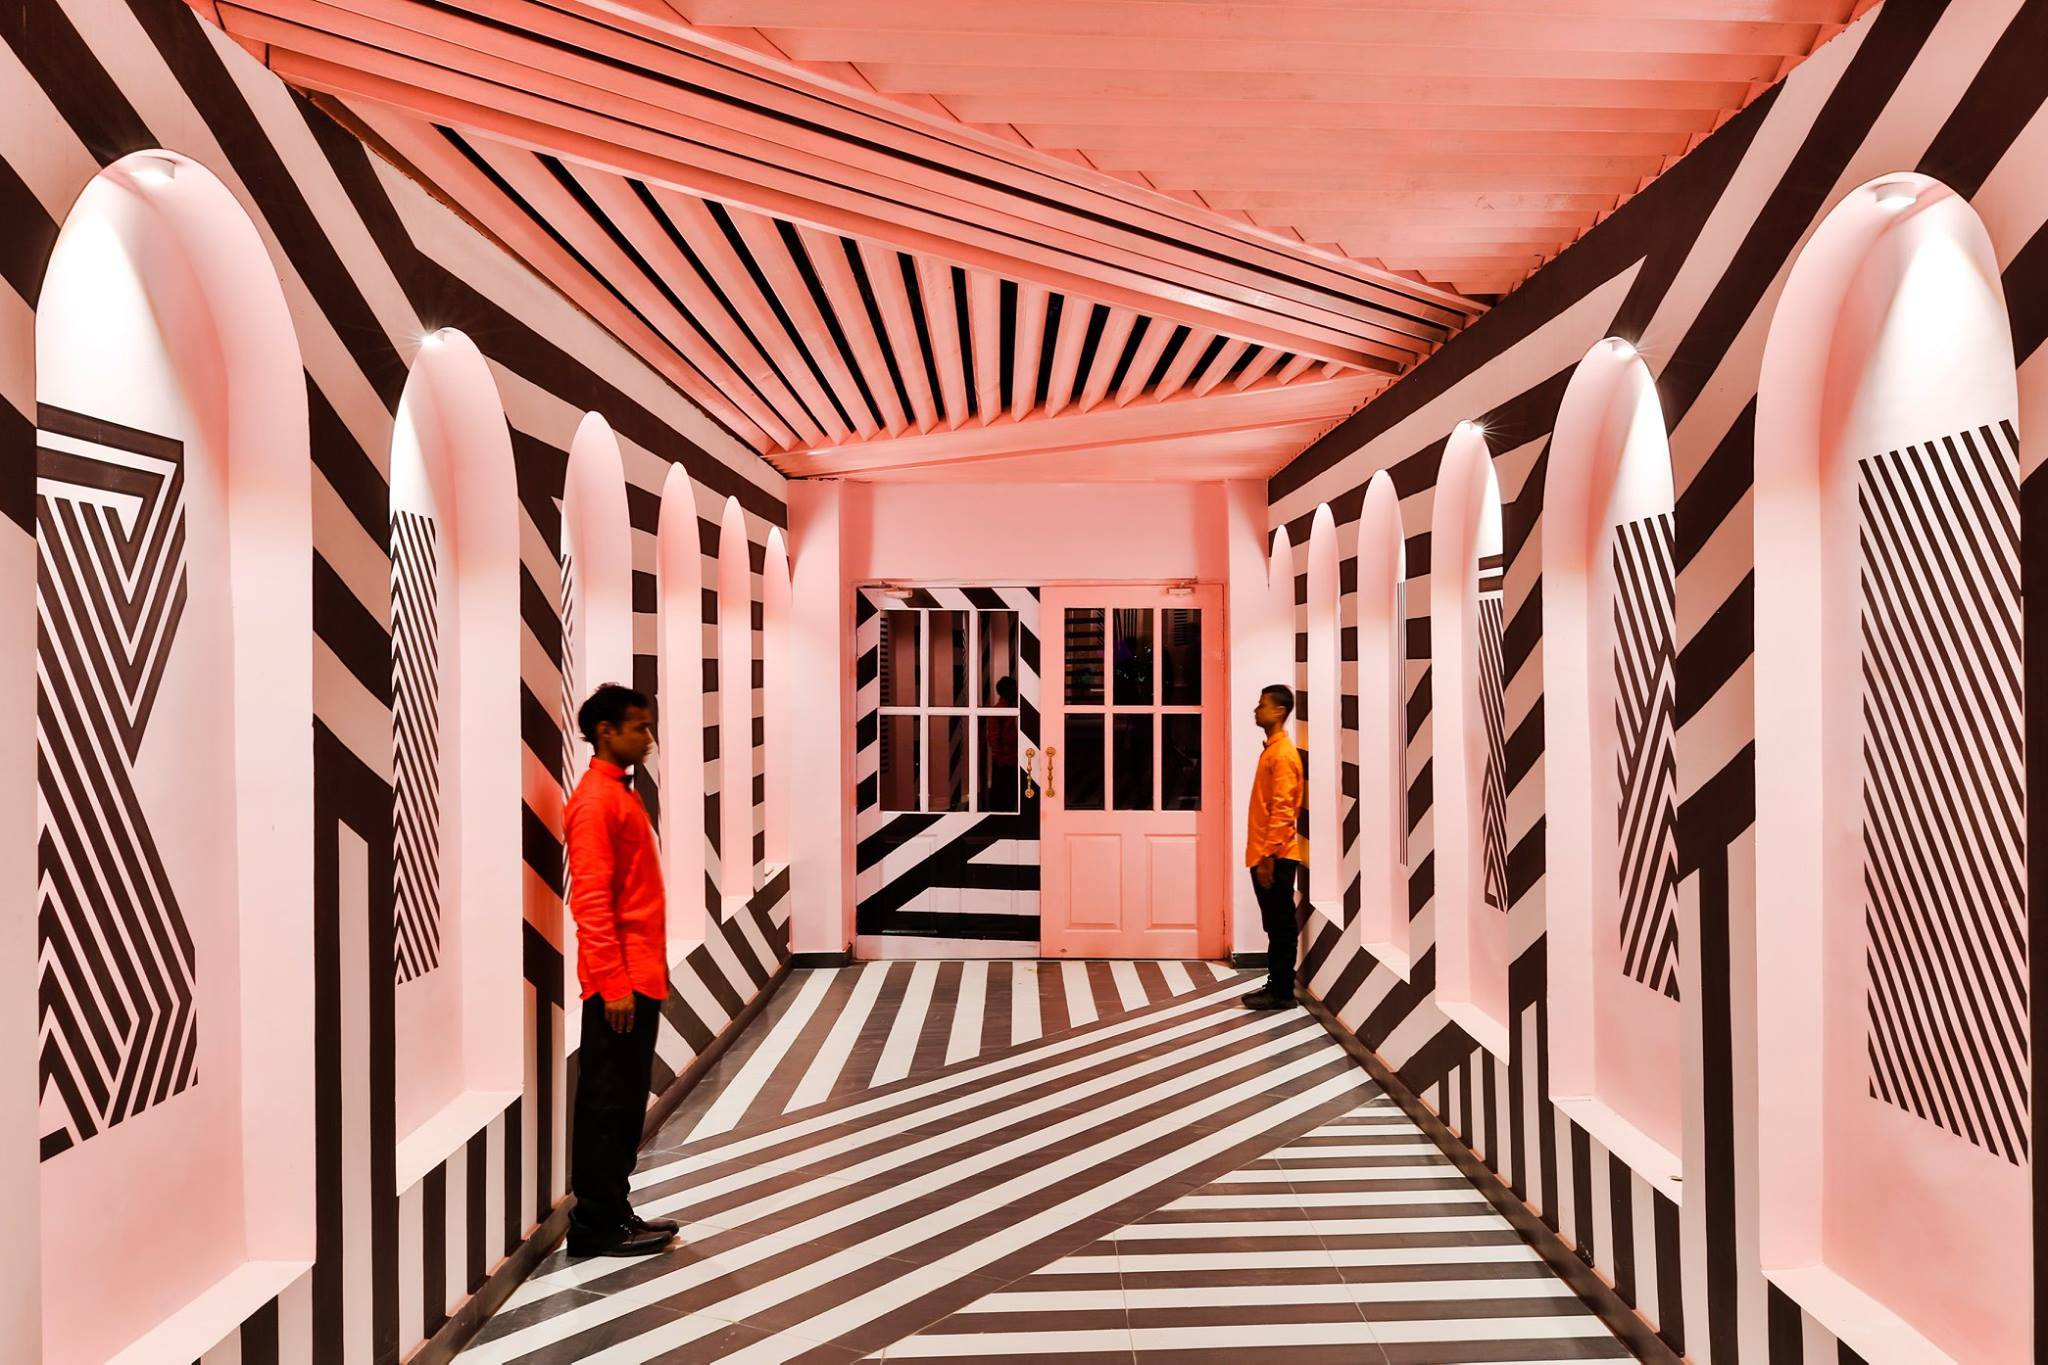 Amazing Wes Anderson restaurant in India (Picture: SAURABH SURYAN) OF LOKESH DANG FOR RENESA ARCHITECTS